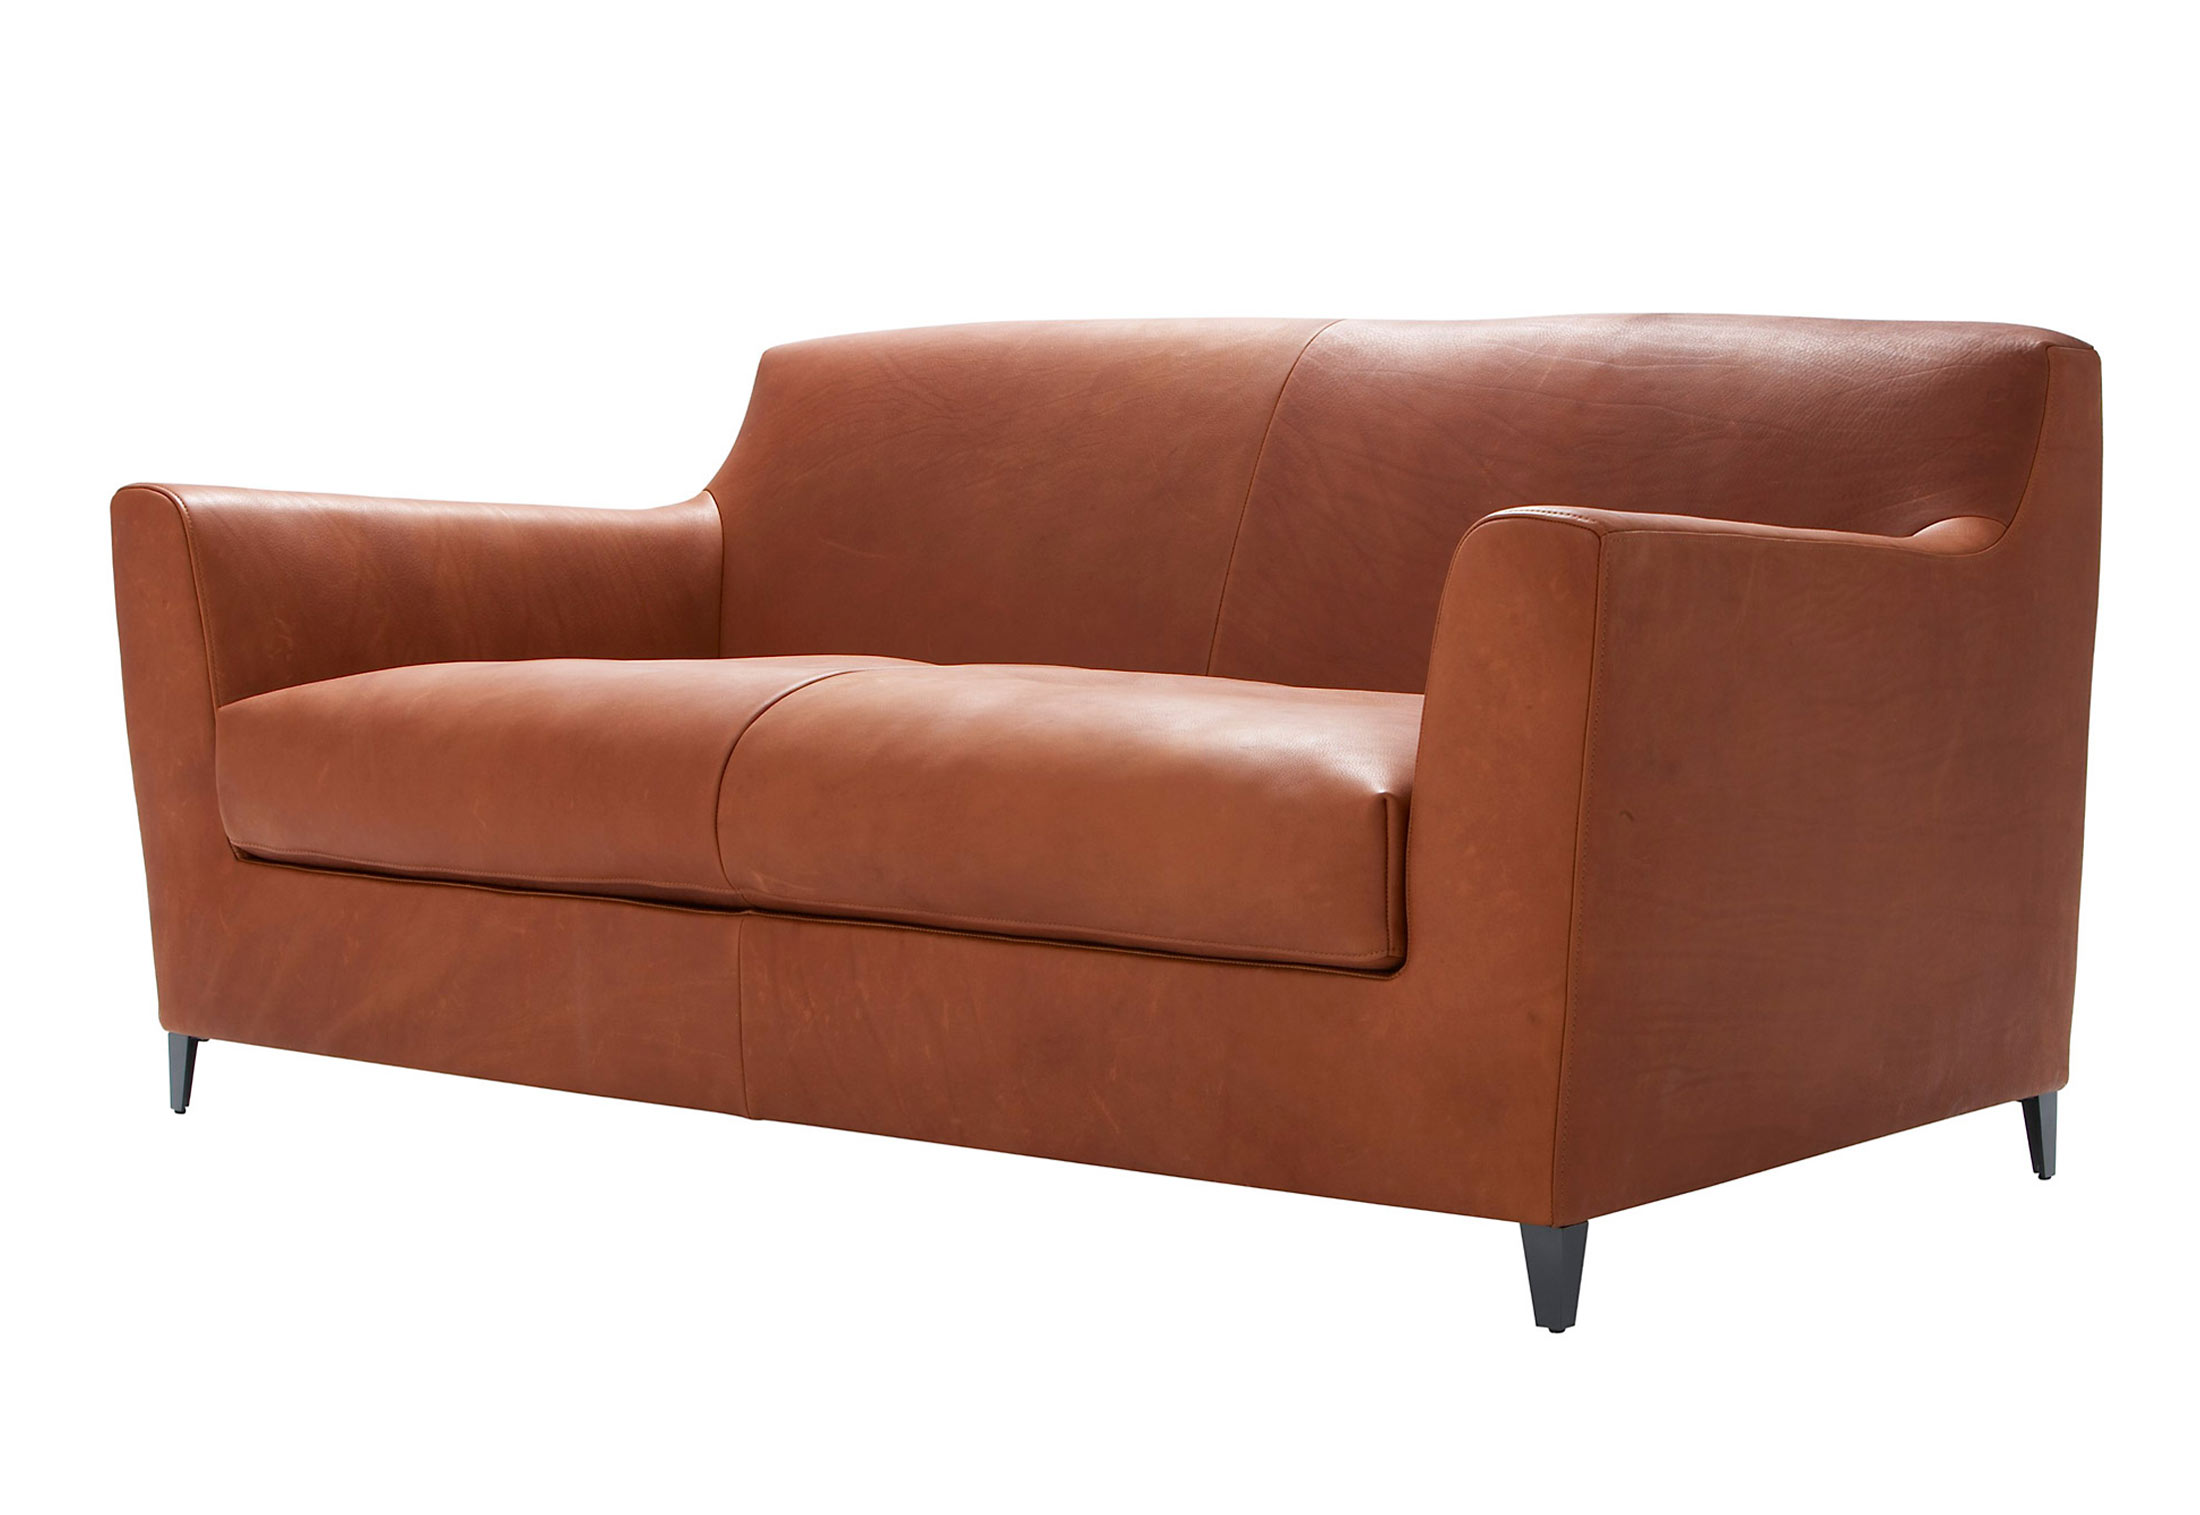 rive droite sofa by ligne roset stylepark. Black Bedroom Furniture Sets. Home Design Ideas